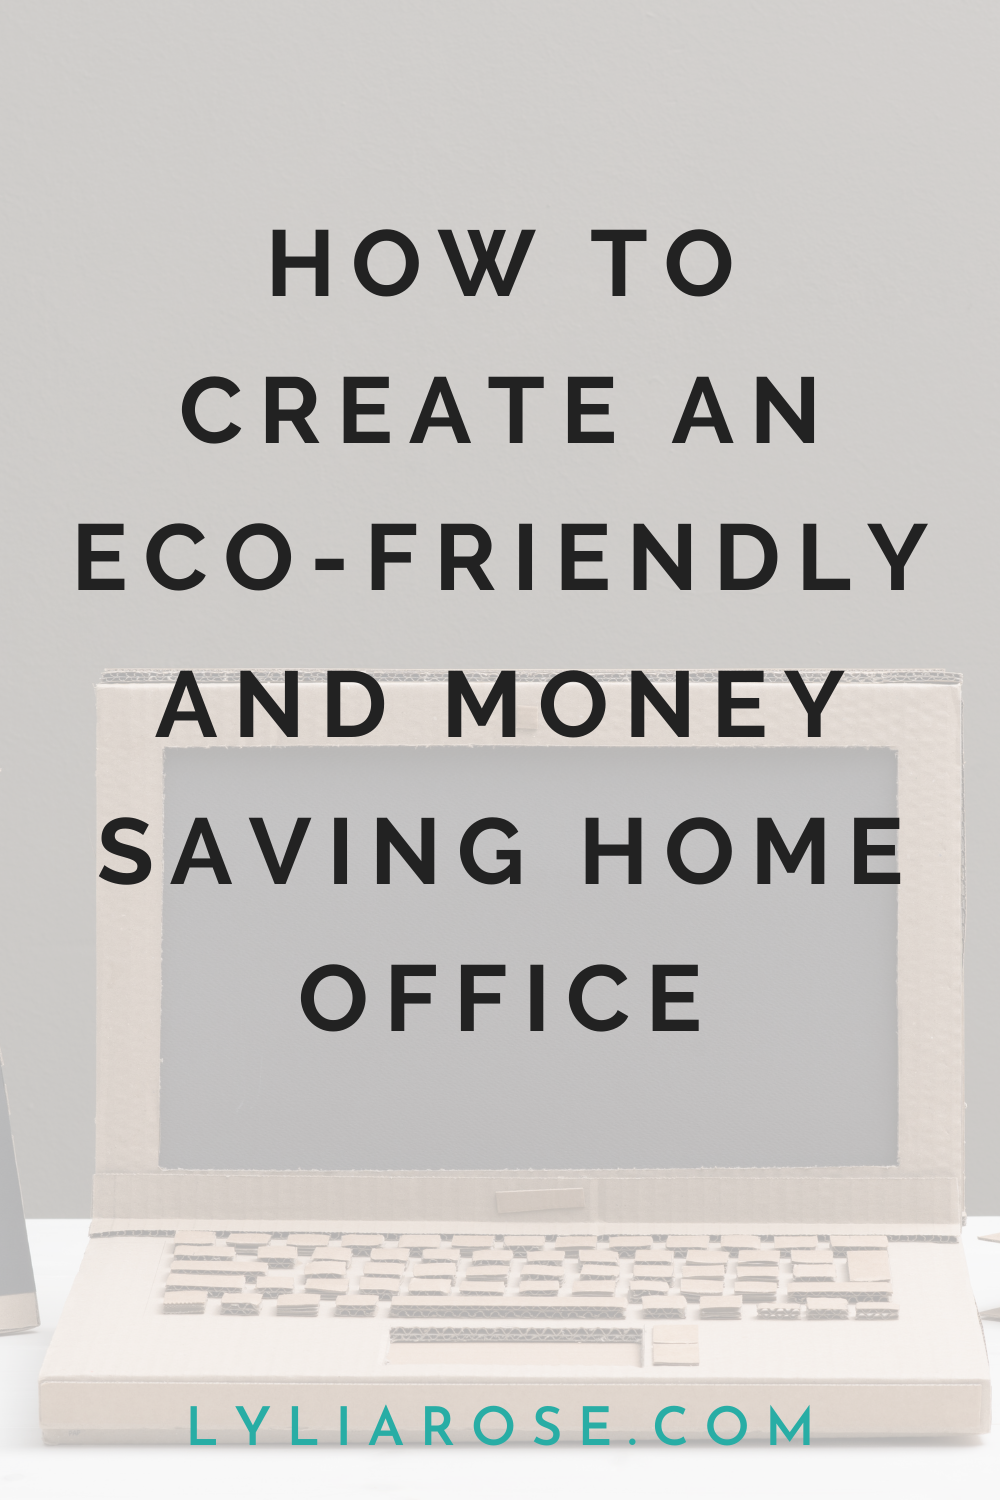 How to create an eco-friendly and money saving home office (2)